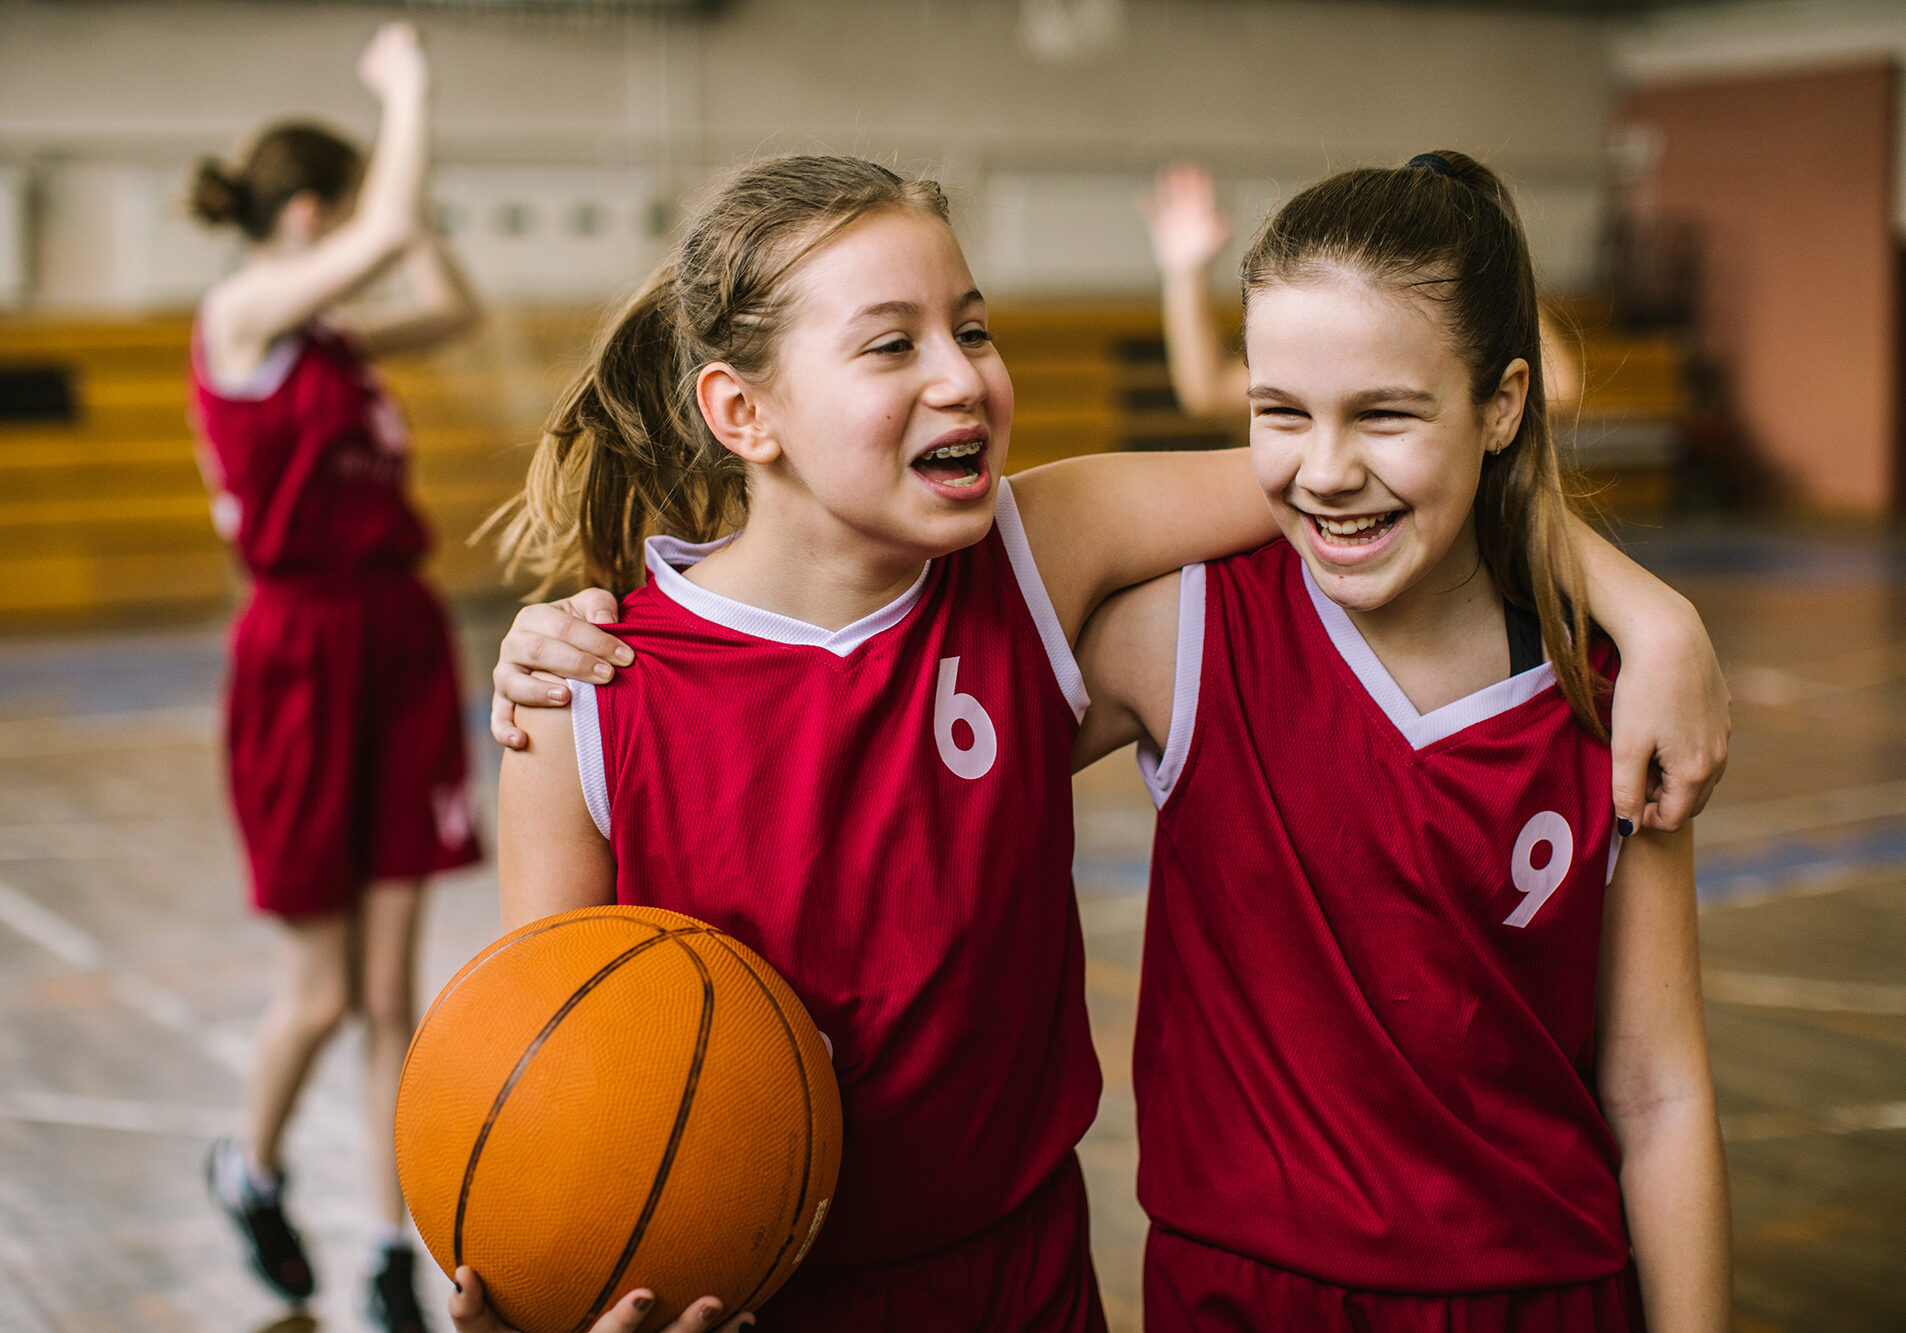 Cheerful teenage girls embracing after training, while walking and holding basketball ball, smiling lively indoor